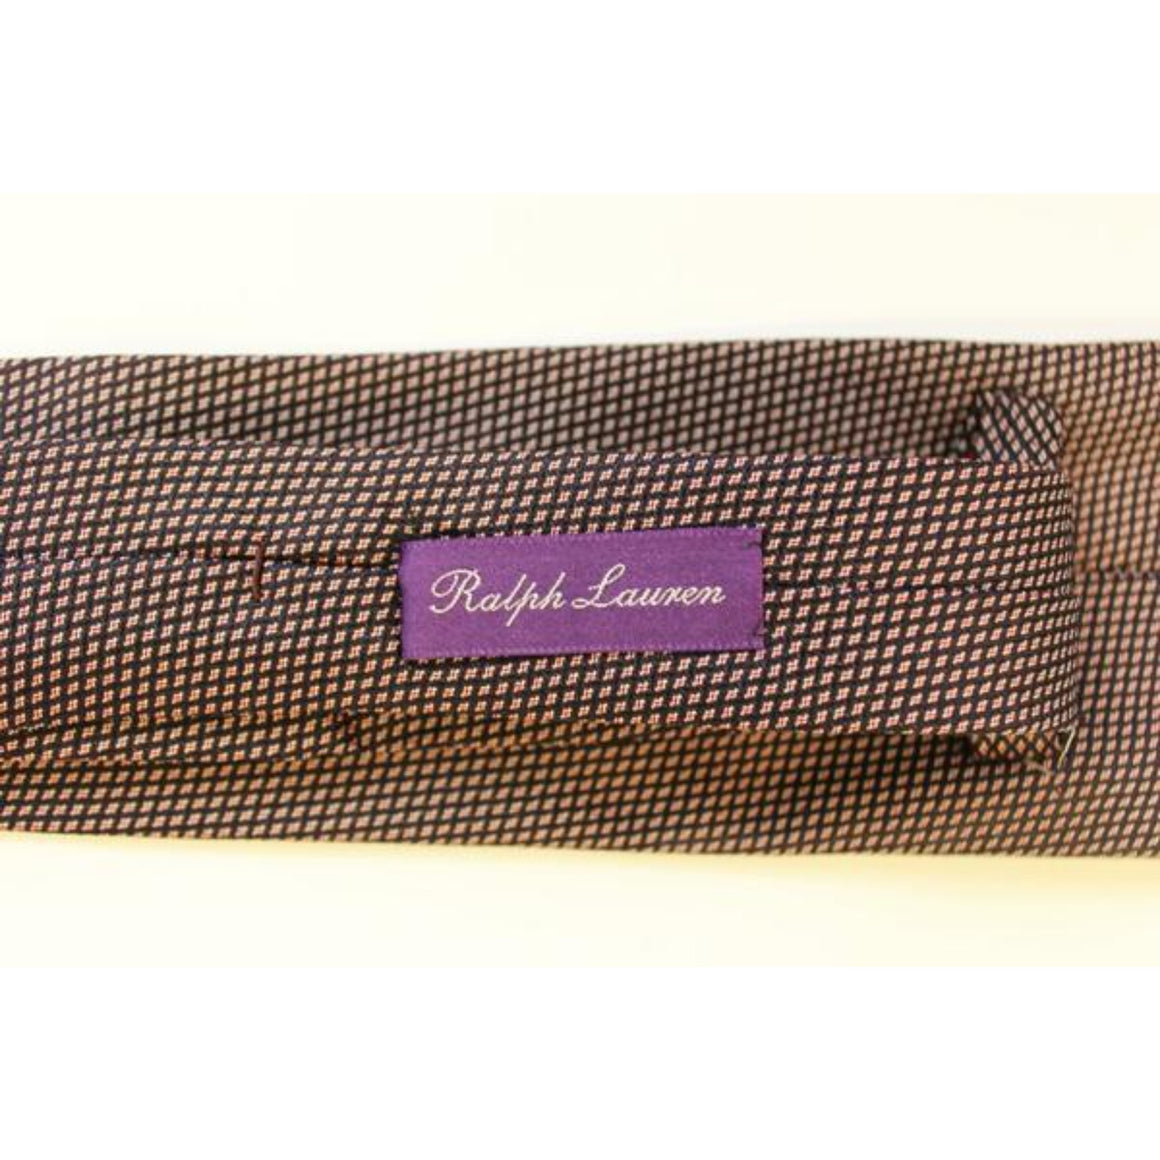 'Ralph Lauren Purple Label Navy Twill Tie'